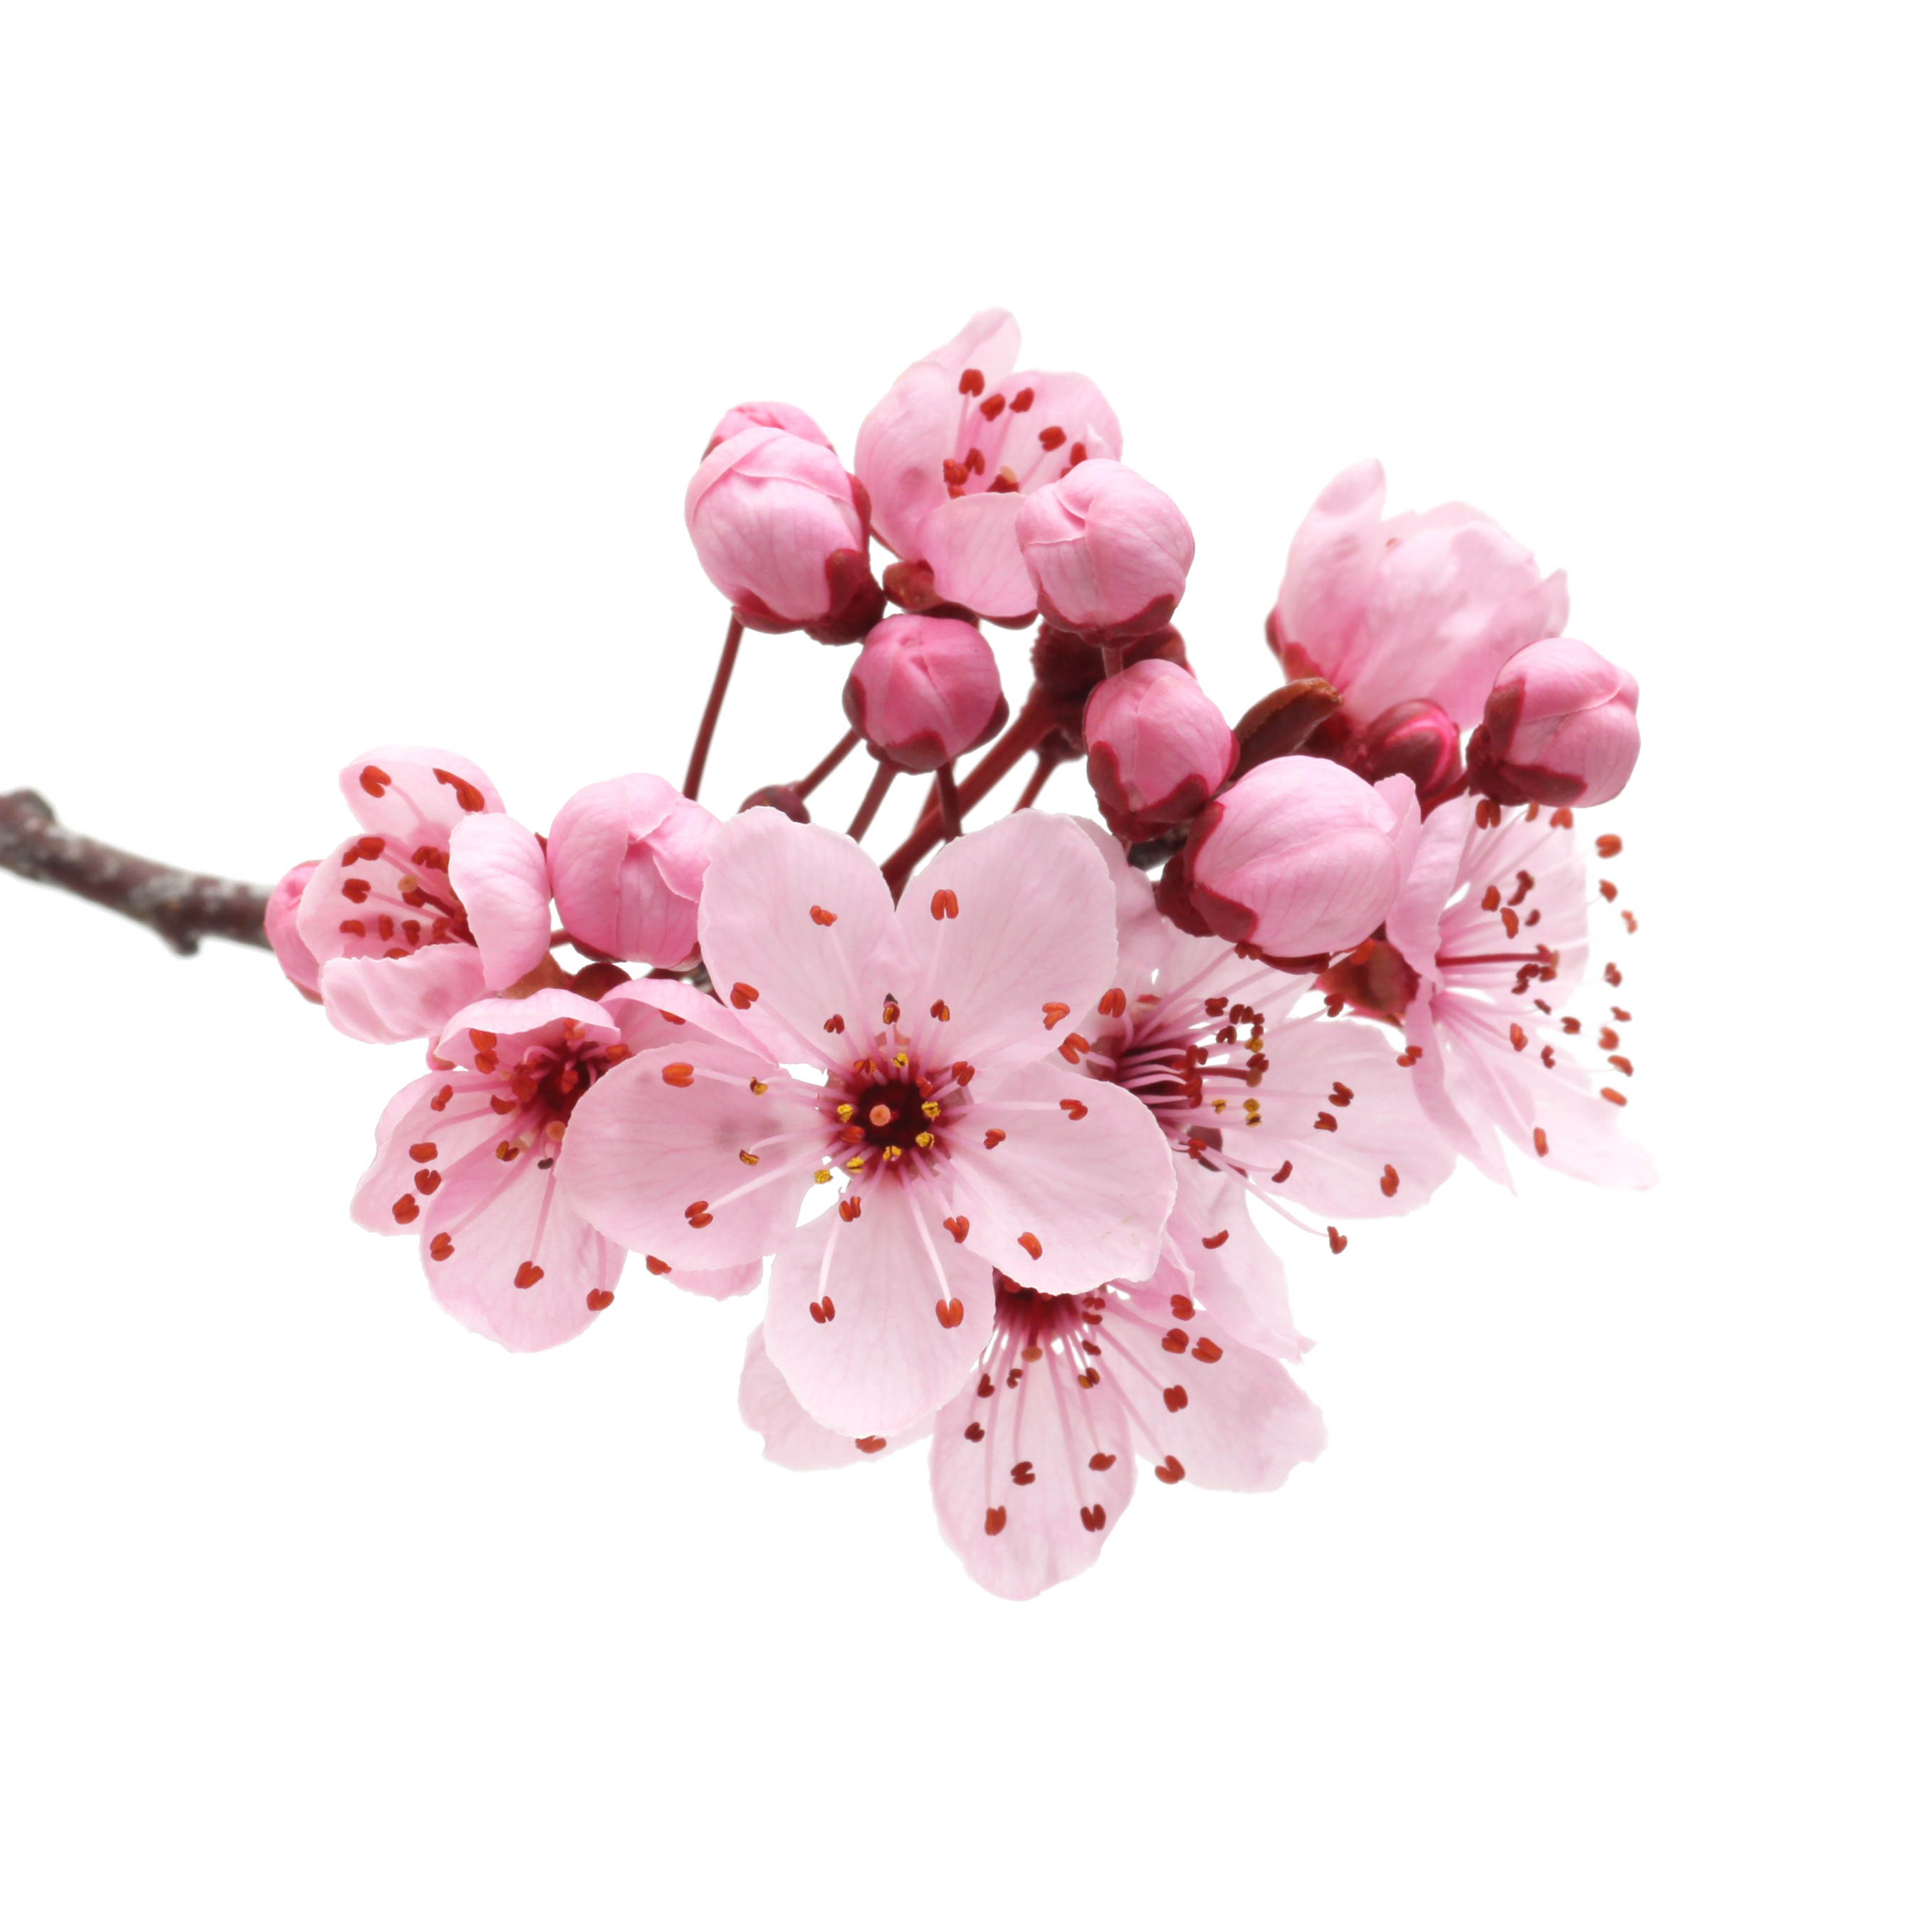 Japanese flowering cherry mart. Flowers transparent png graphic free download